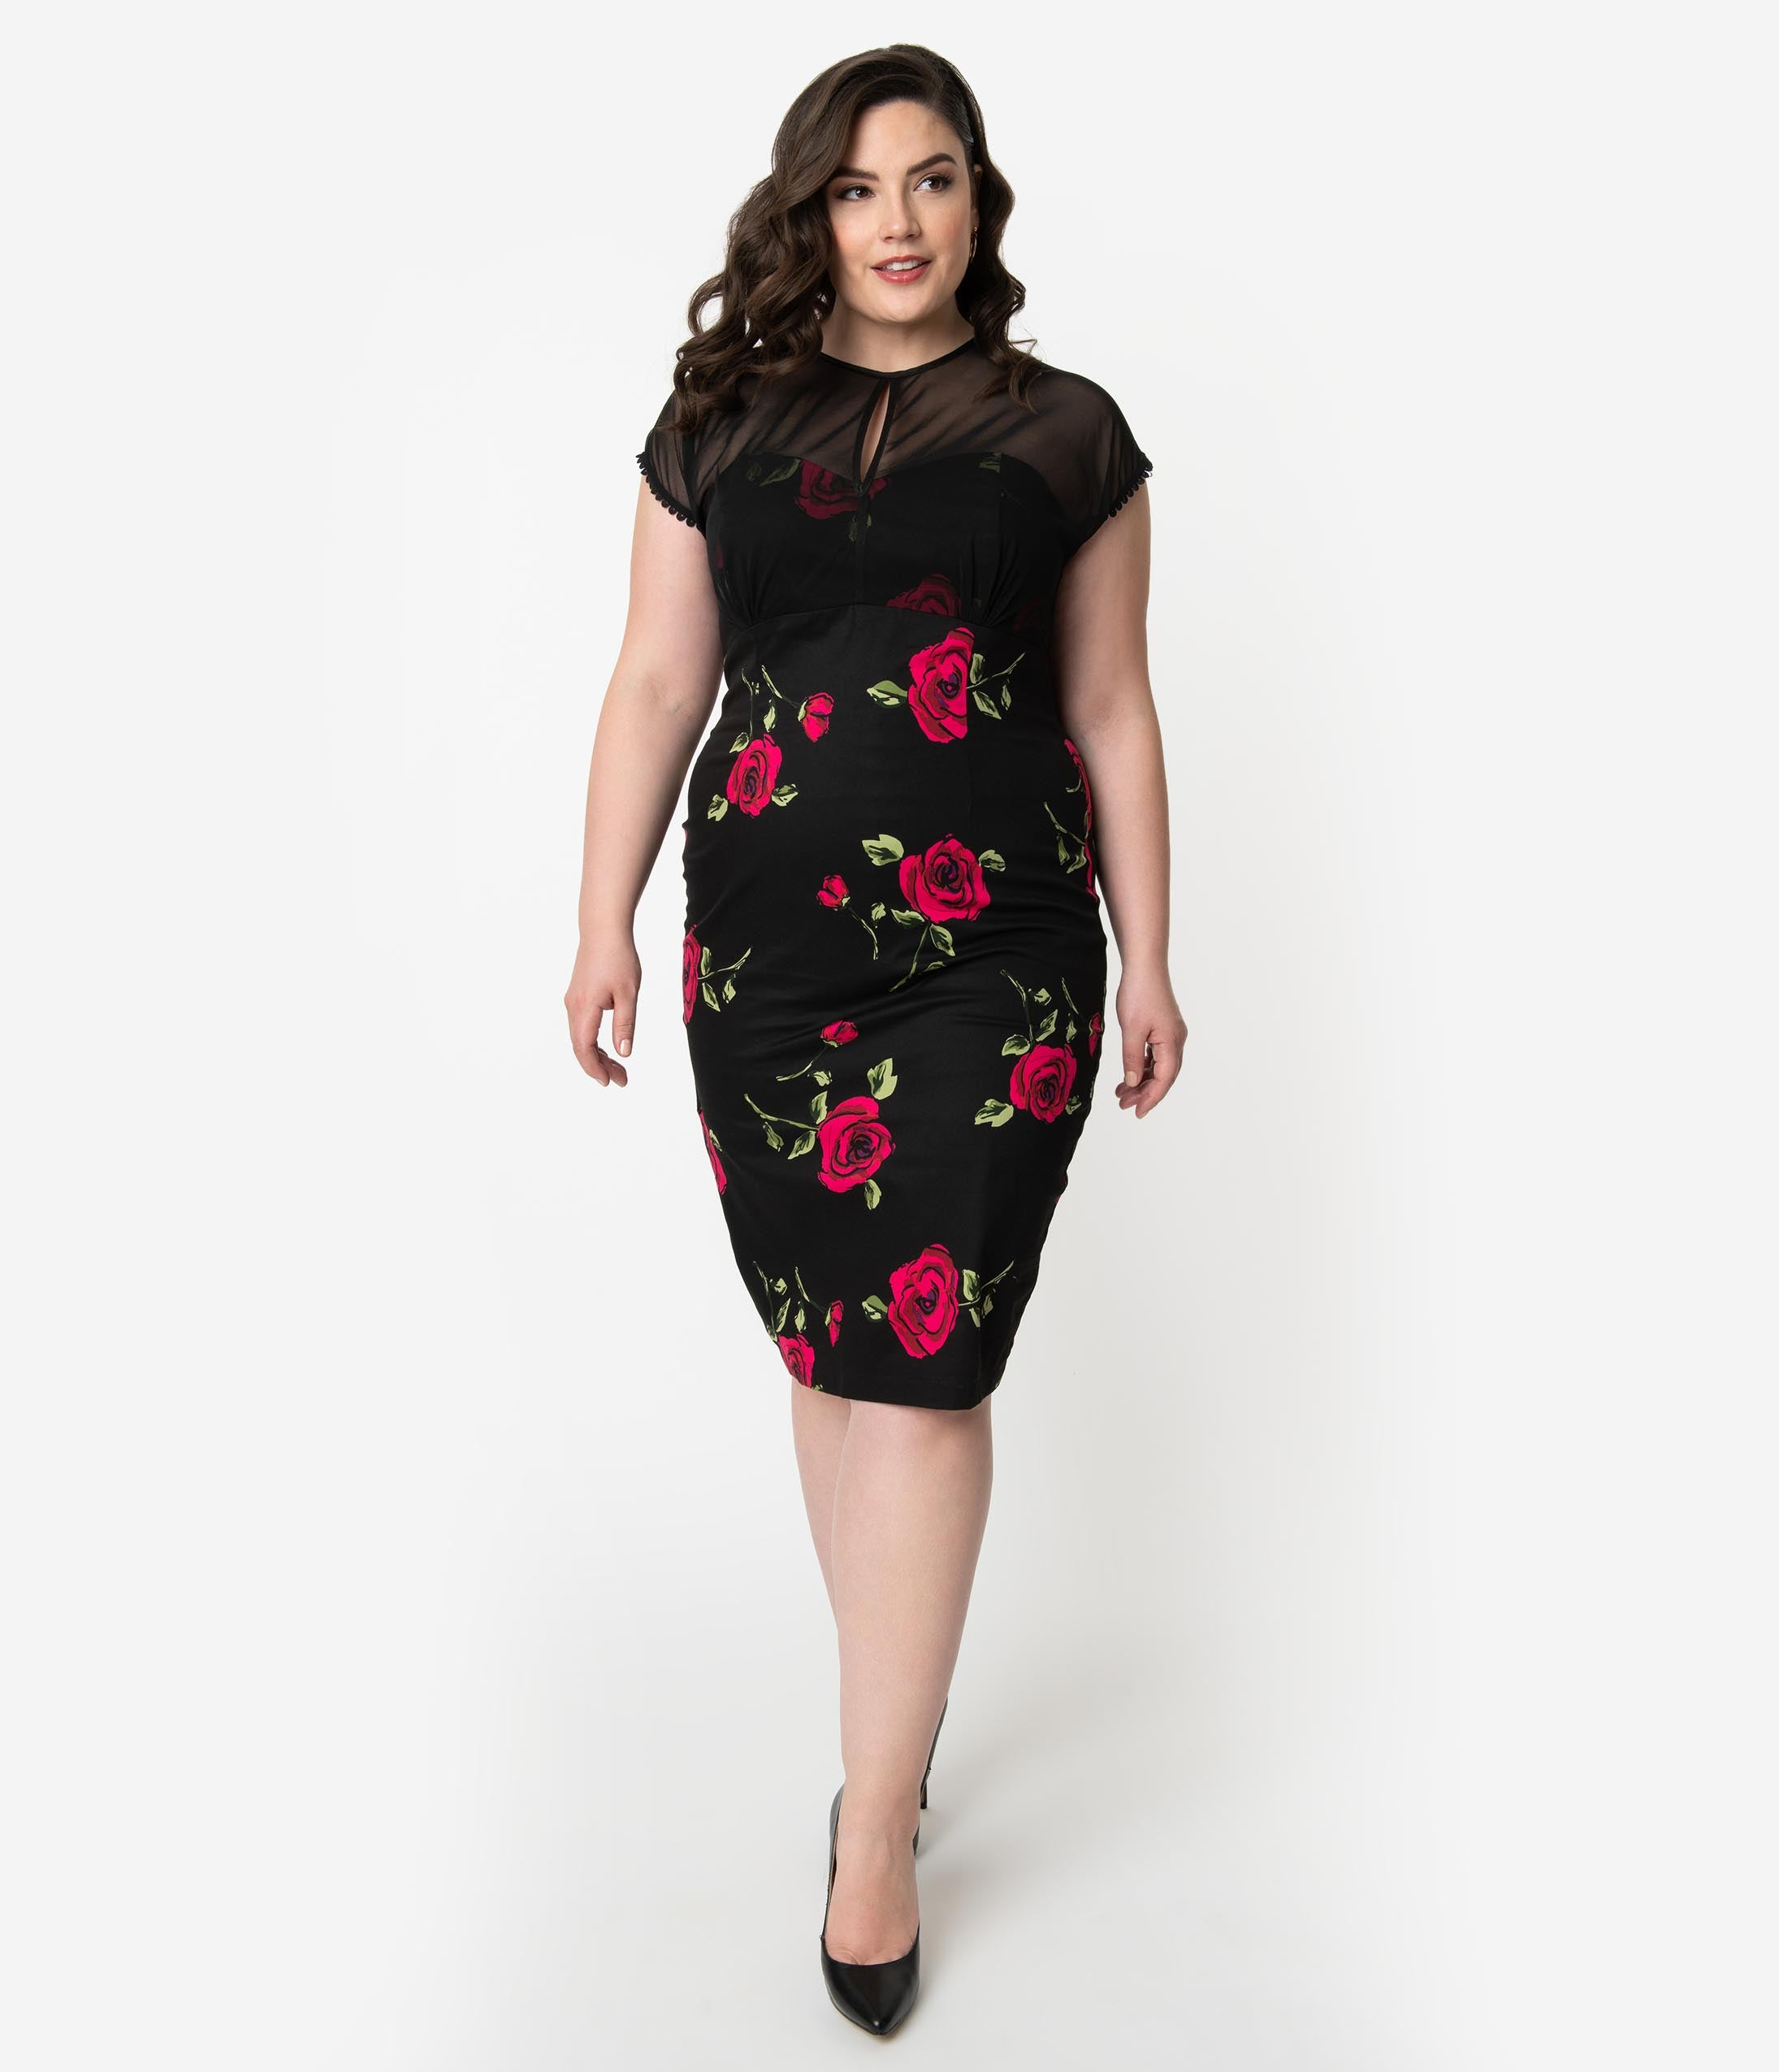 Plus Size Cap Sleeves Floral Print Cotton Cocktail Below the Knee Empire Waistline Pencil-Skirt Fitted Illusion Keyhole Applique Mesh Sheer Fall Dress